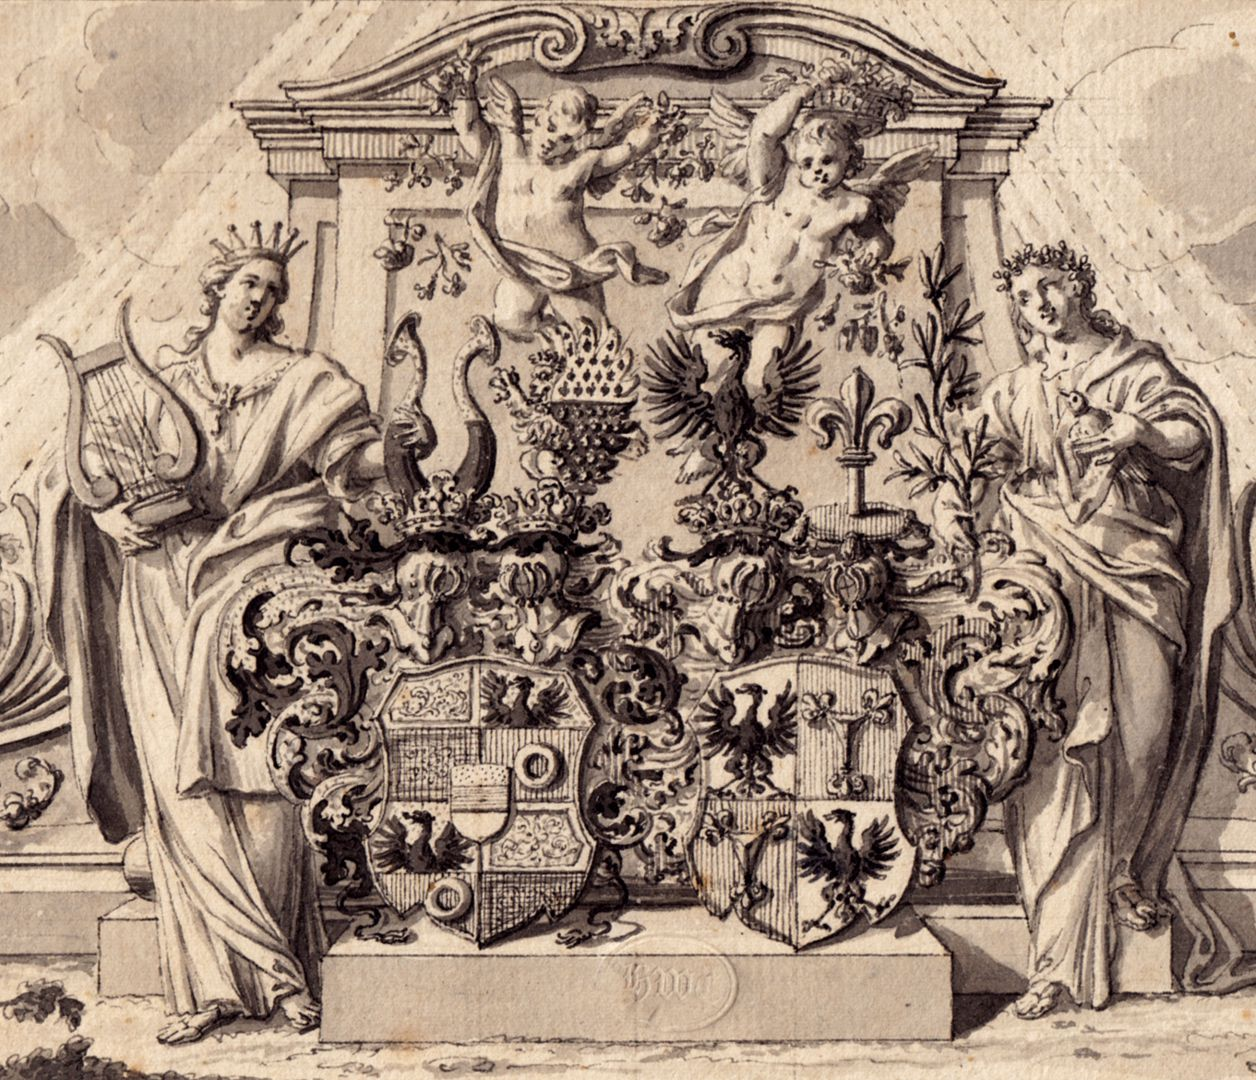 Alliance coat of arms of Pfinzing - Nützel, in front of an allegoric monument Detail